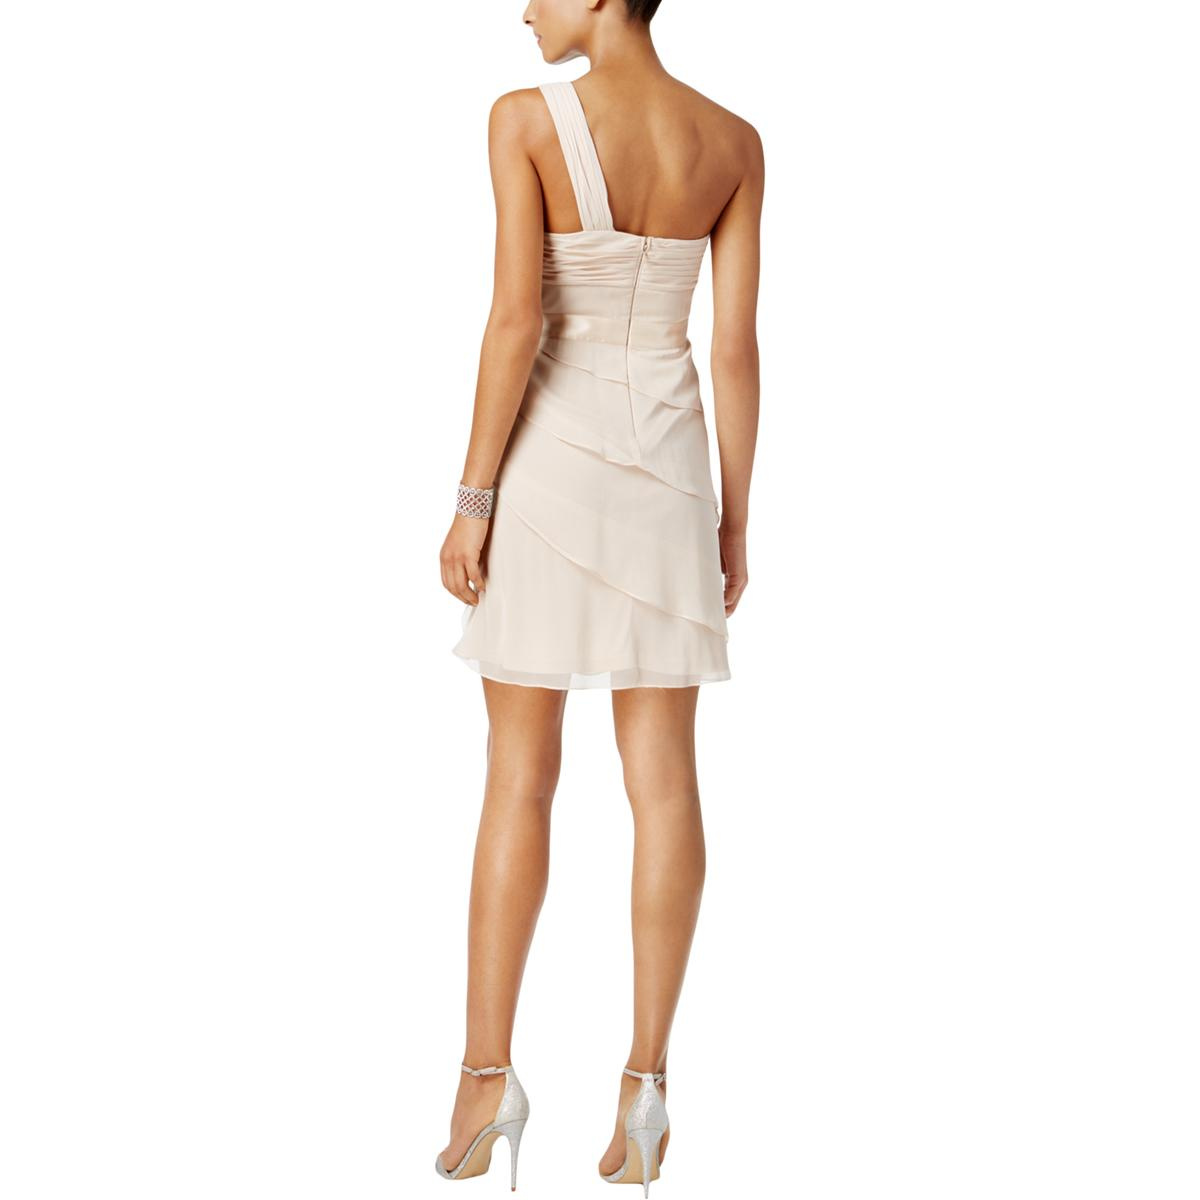 Adrianna-Papell-Womens-Tiered-One-Shoulder-Party-Cocktail-Dress-BHFO-6662 thumbnail 4